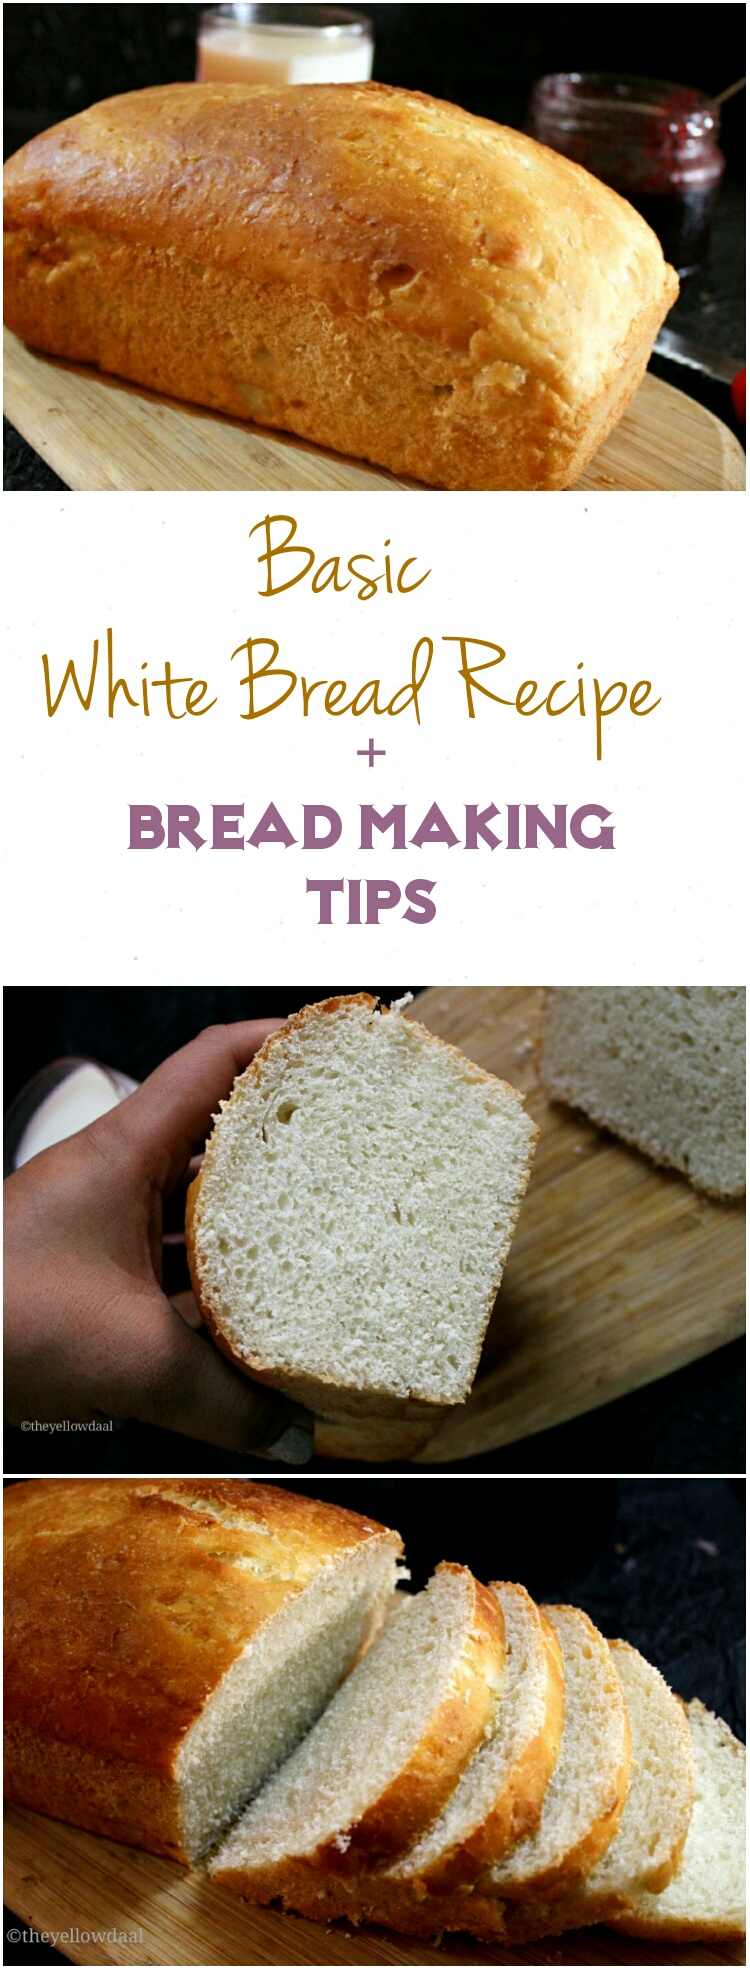 Basic-White-Bread